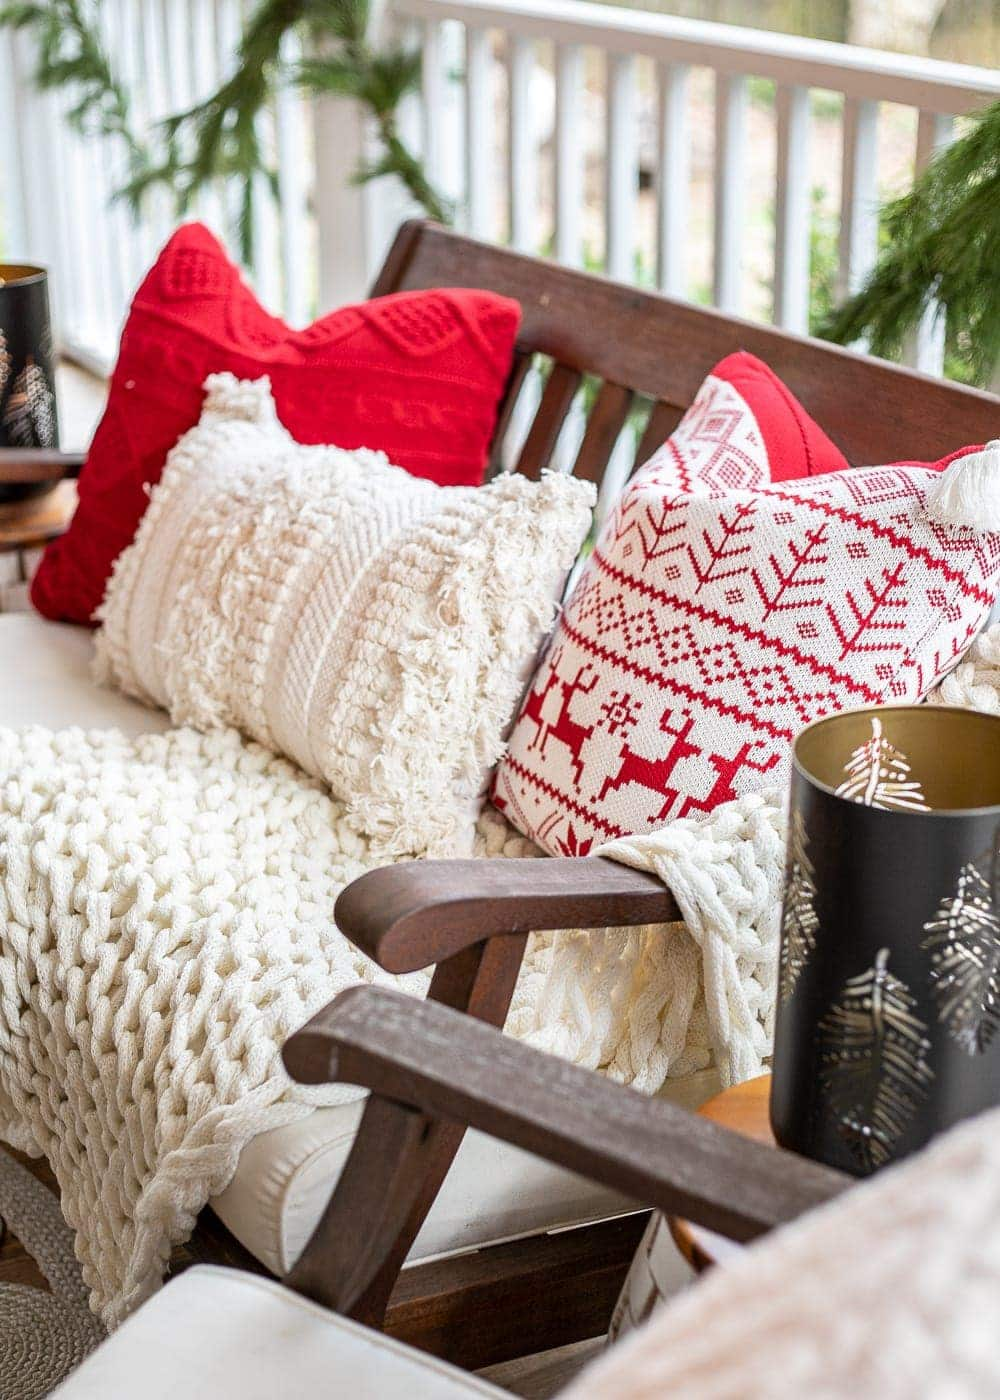 Cozy Christmas pillows and blankets